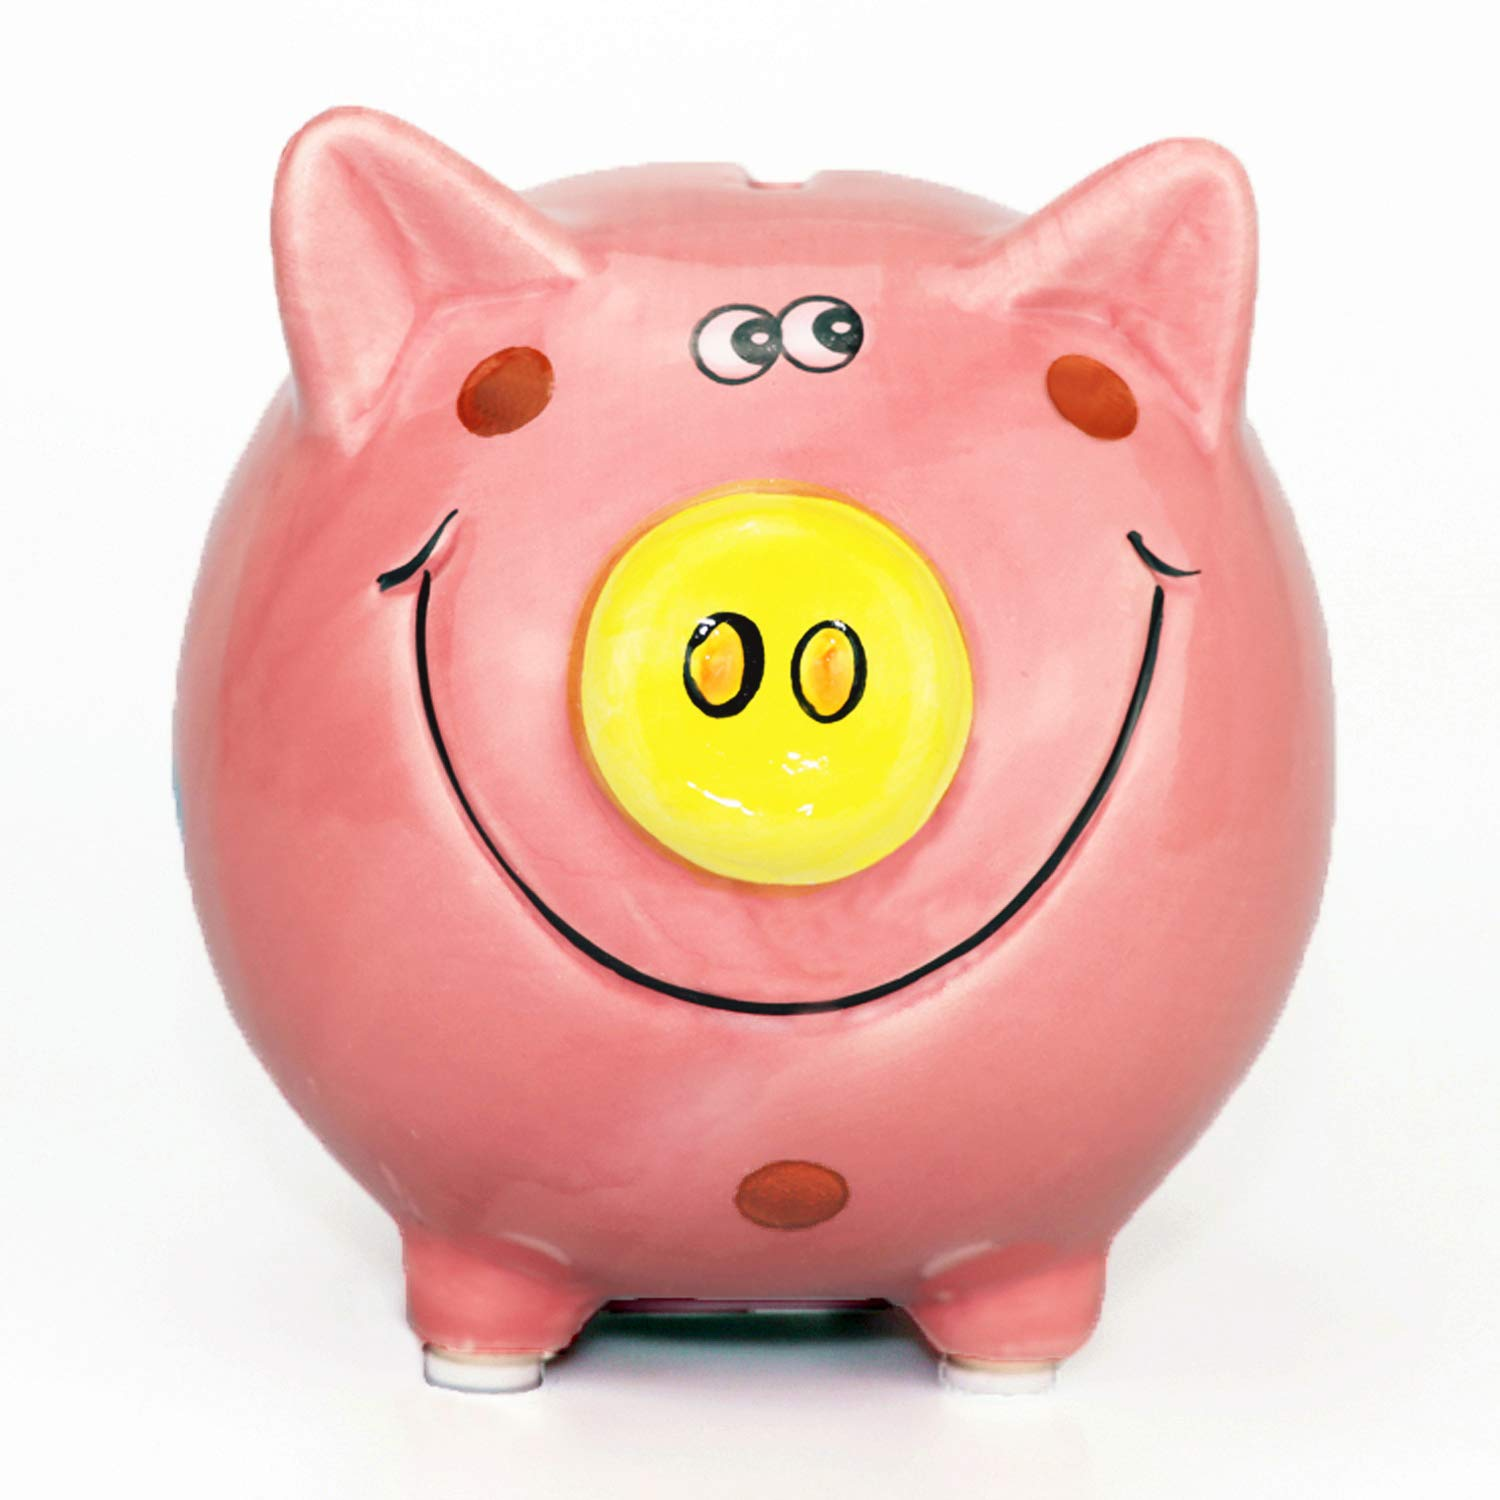 Lovely Girls Piggy Bank, Cute Pig Baby Bank Coin Banks Money Banks for Kids Children Boys, Perfect Size for Birthday Gifts , Home Nursery Décor Keepsake, Favorite Unique Baby Gift Idea, Pink Bank